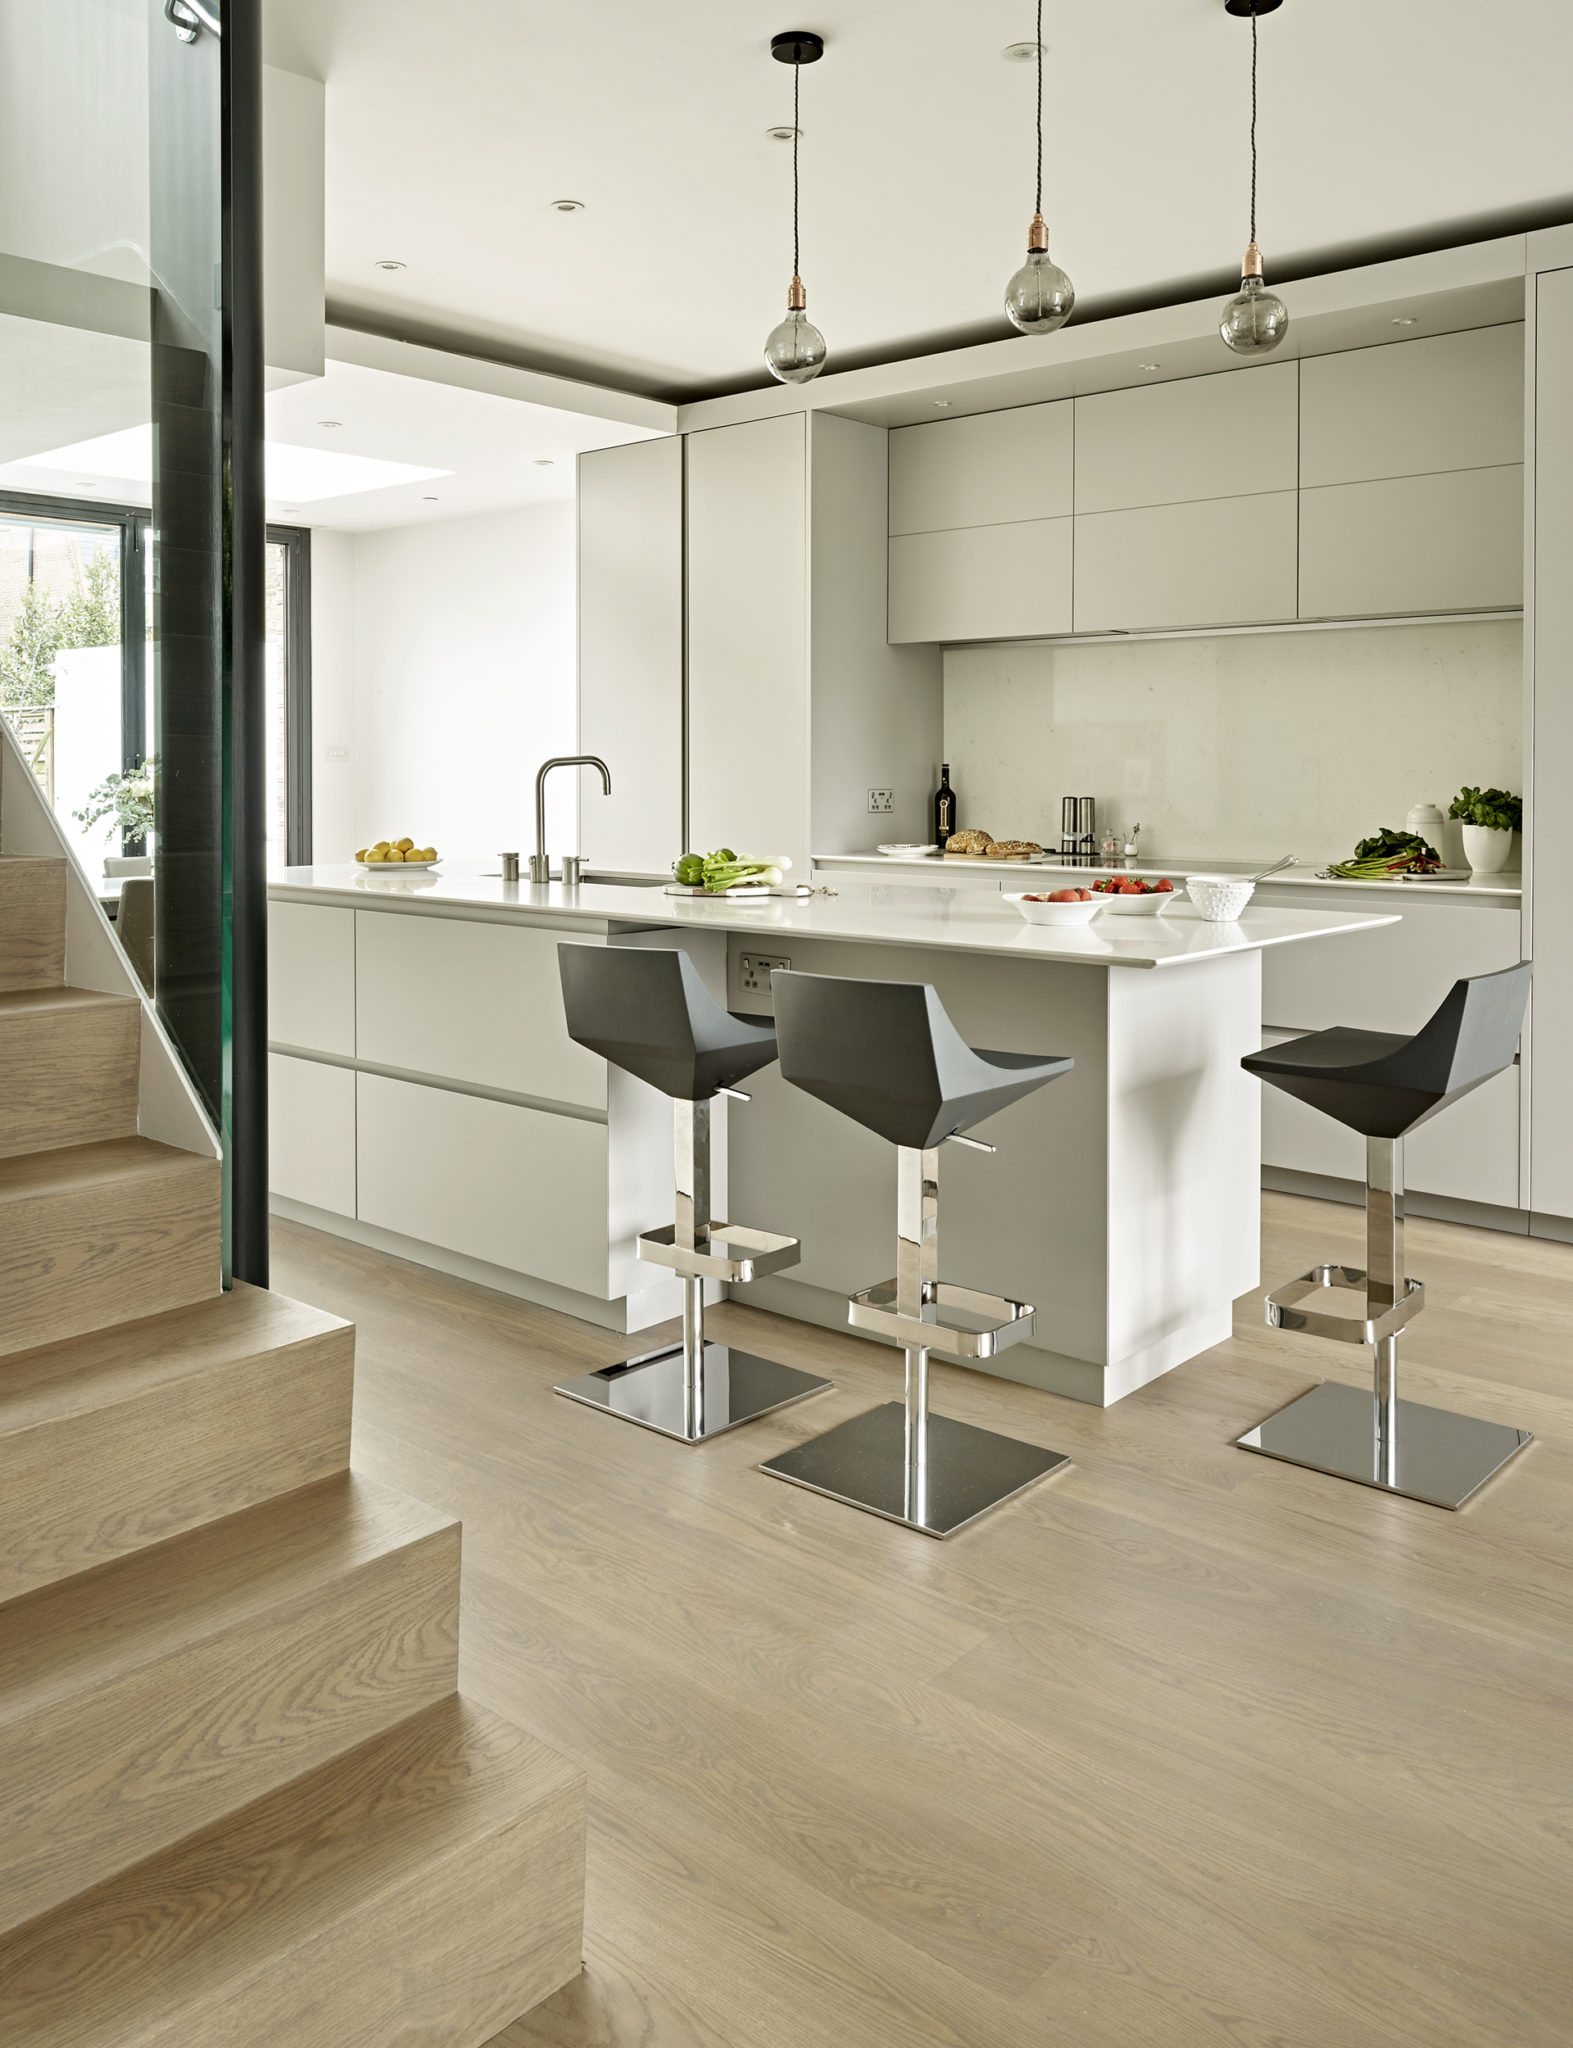 Minimalist Grey Kitchen design in Wimbledon with modern island and handless cabinets